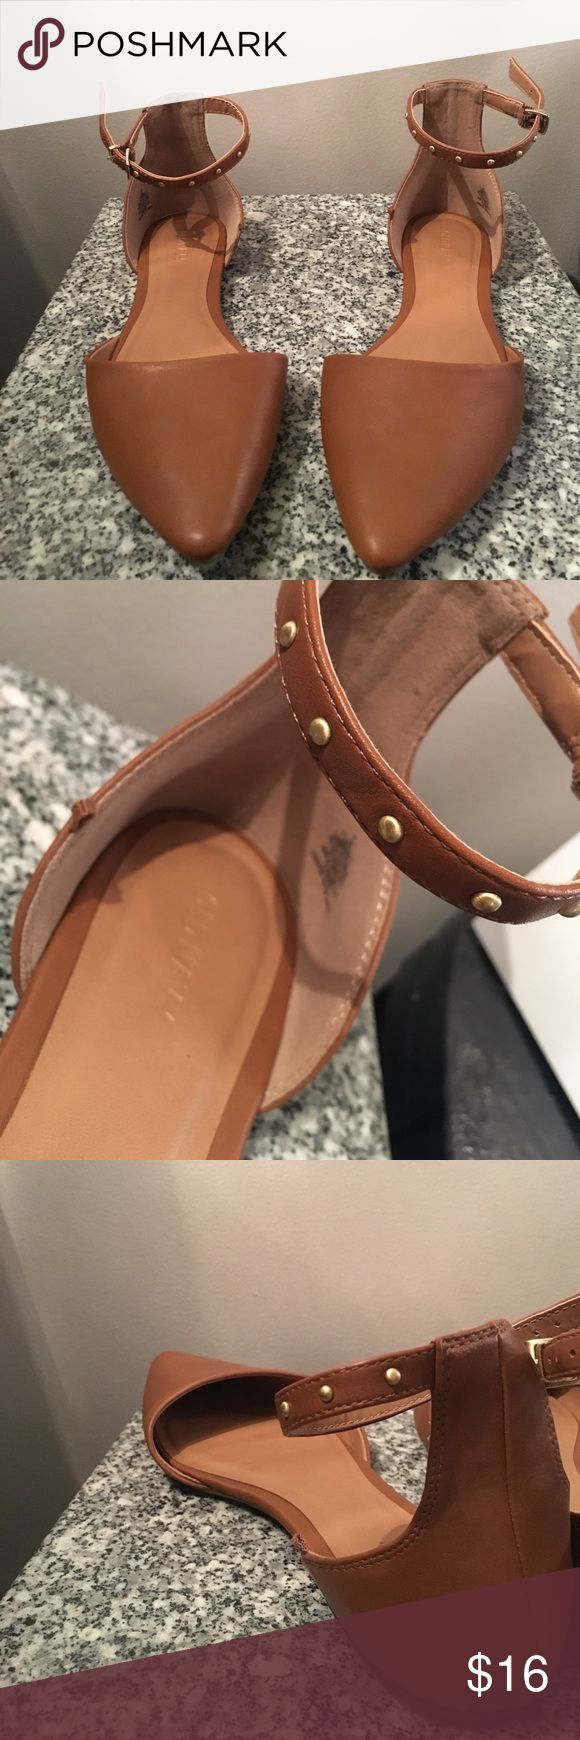 NEVER WORN Brown Flats with ankle strap! Brown Flats | Ankle Strap | Old Navy | NEVER WORN | Size 9 Old Navy Shoes Flats & Loafers